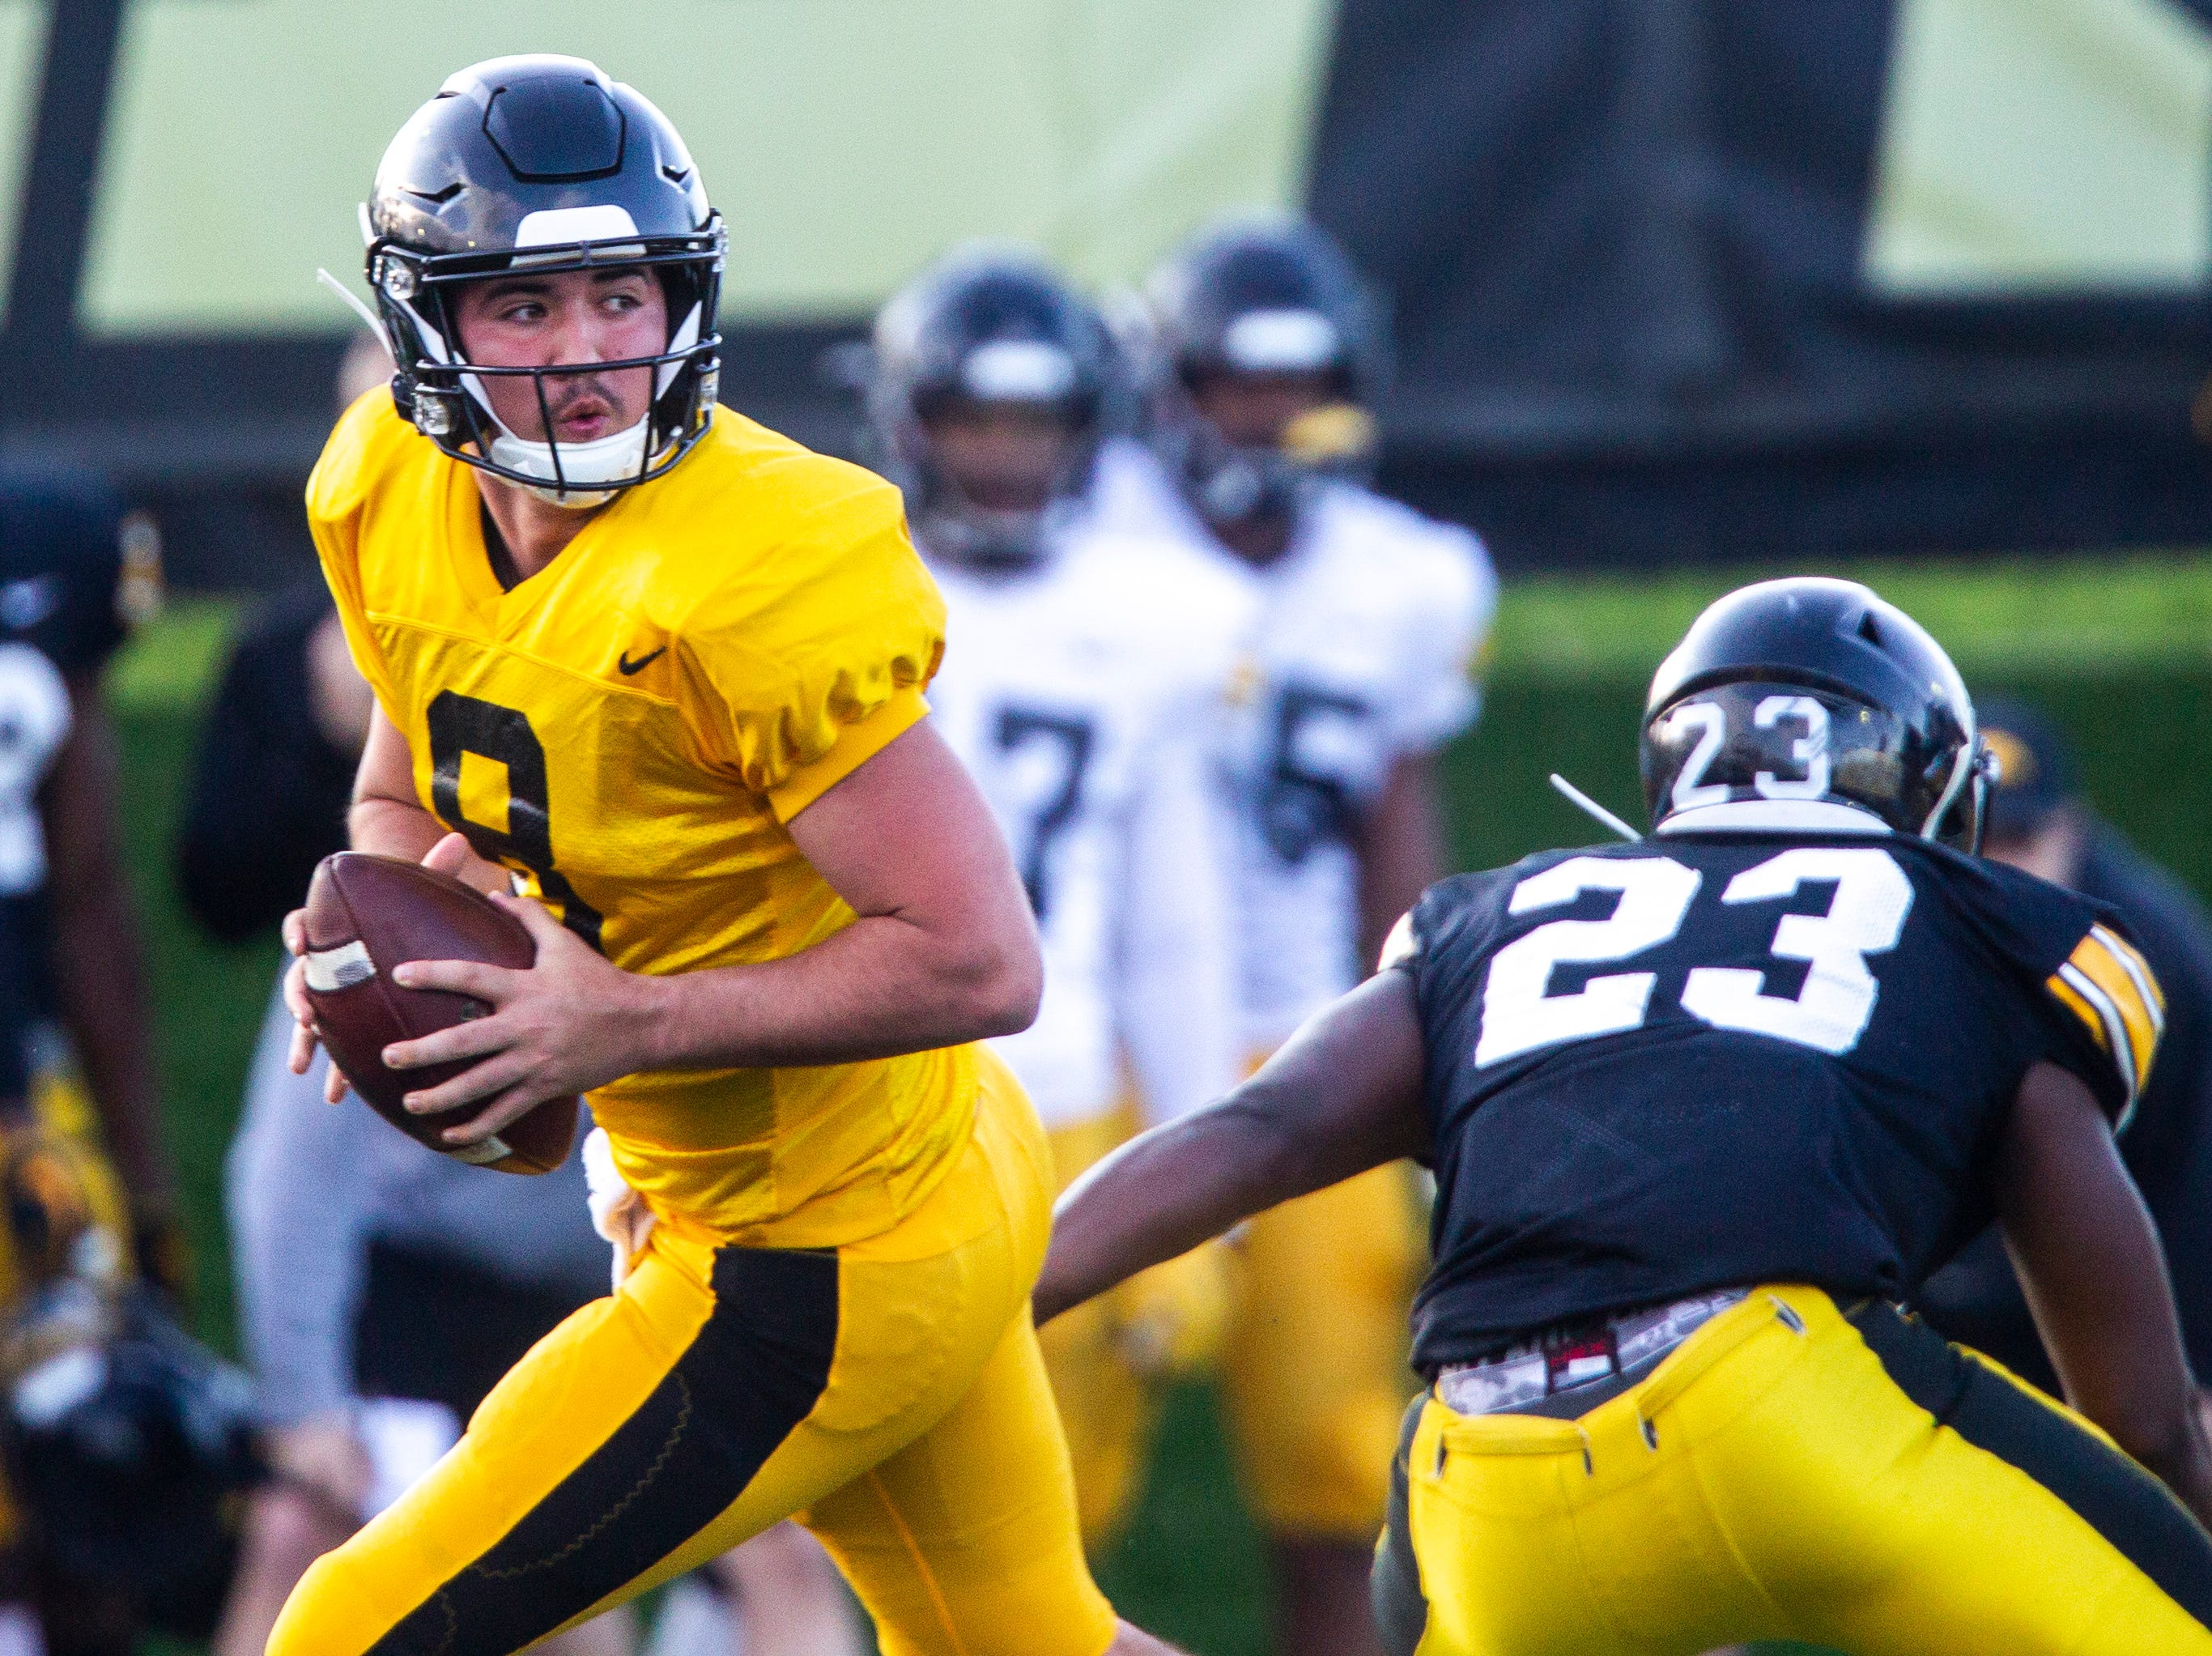 Iowa quarterback Alex Padilla (8) drops back to pass during the final spring football practice, Friday, April 26, 2019, at the University of Iowa outdoor practice facility in Iowa City, Iowa.